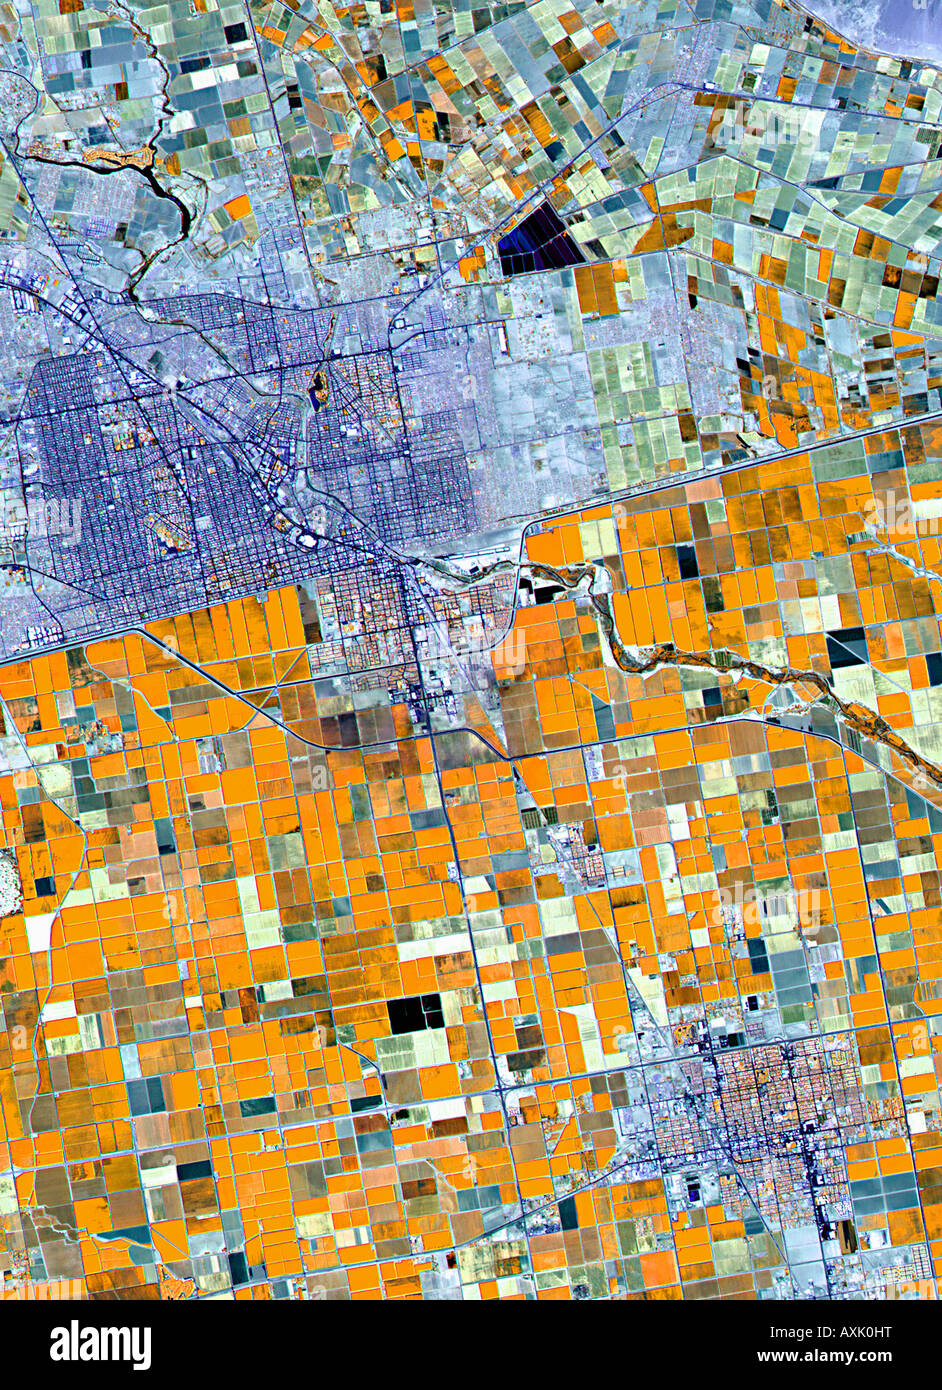 Immagine satellitare dei terreni agricoli in Germania Foto Stock